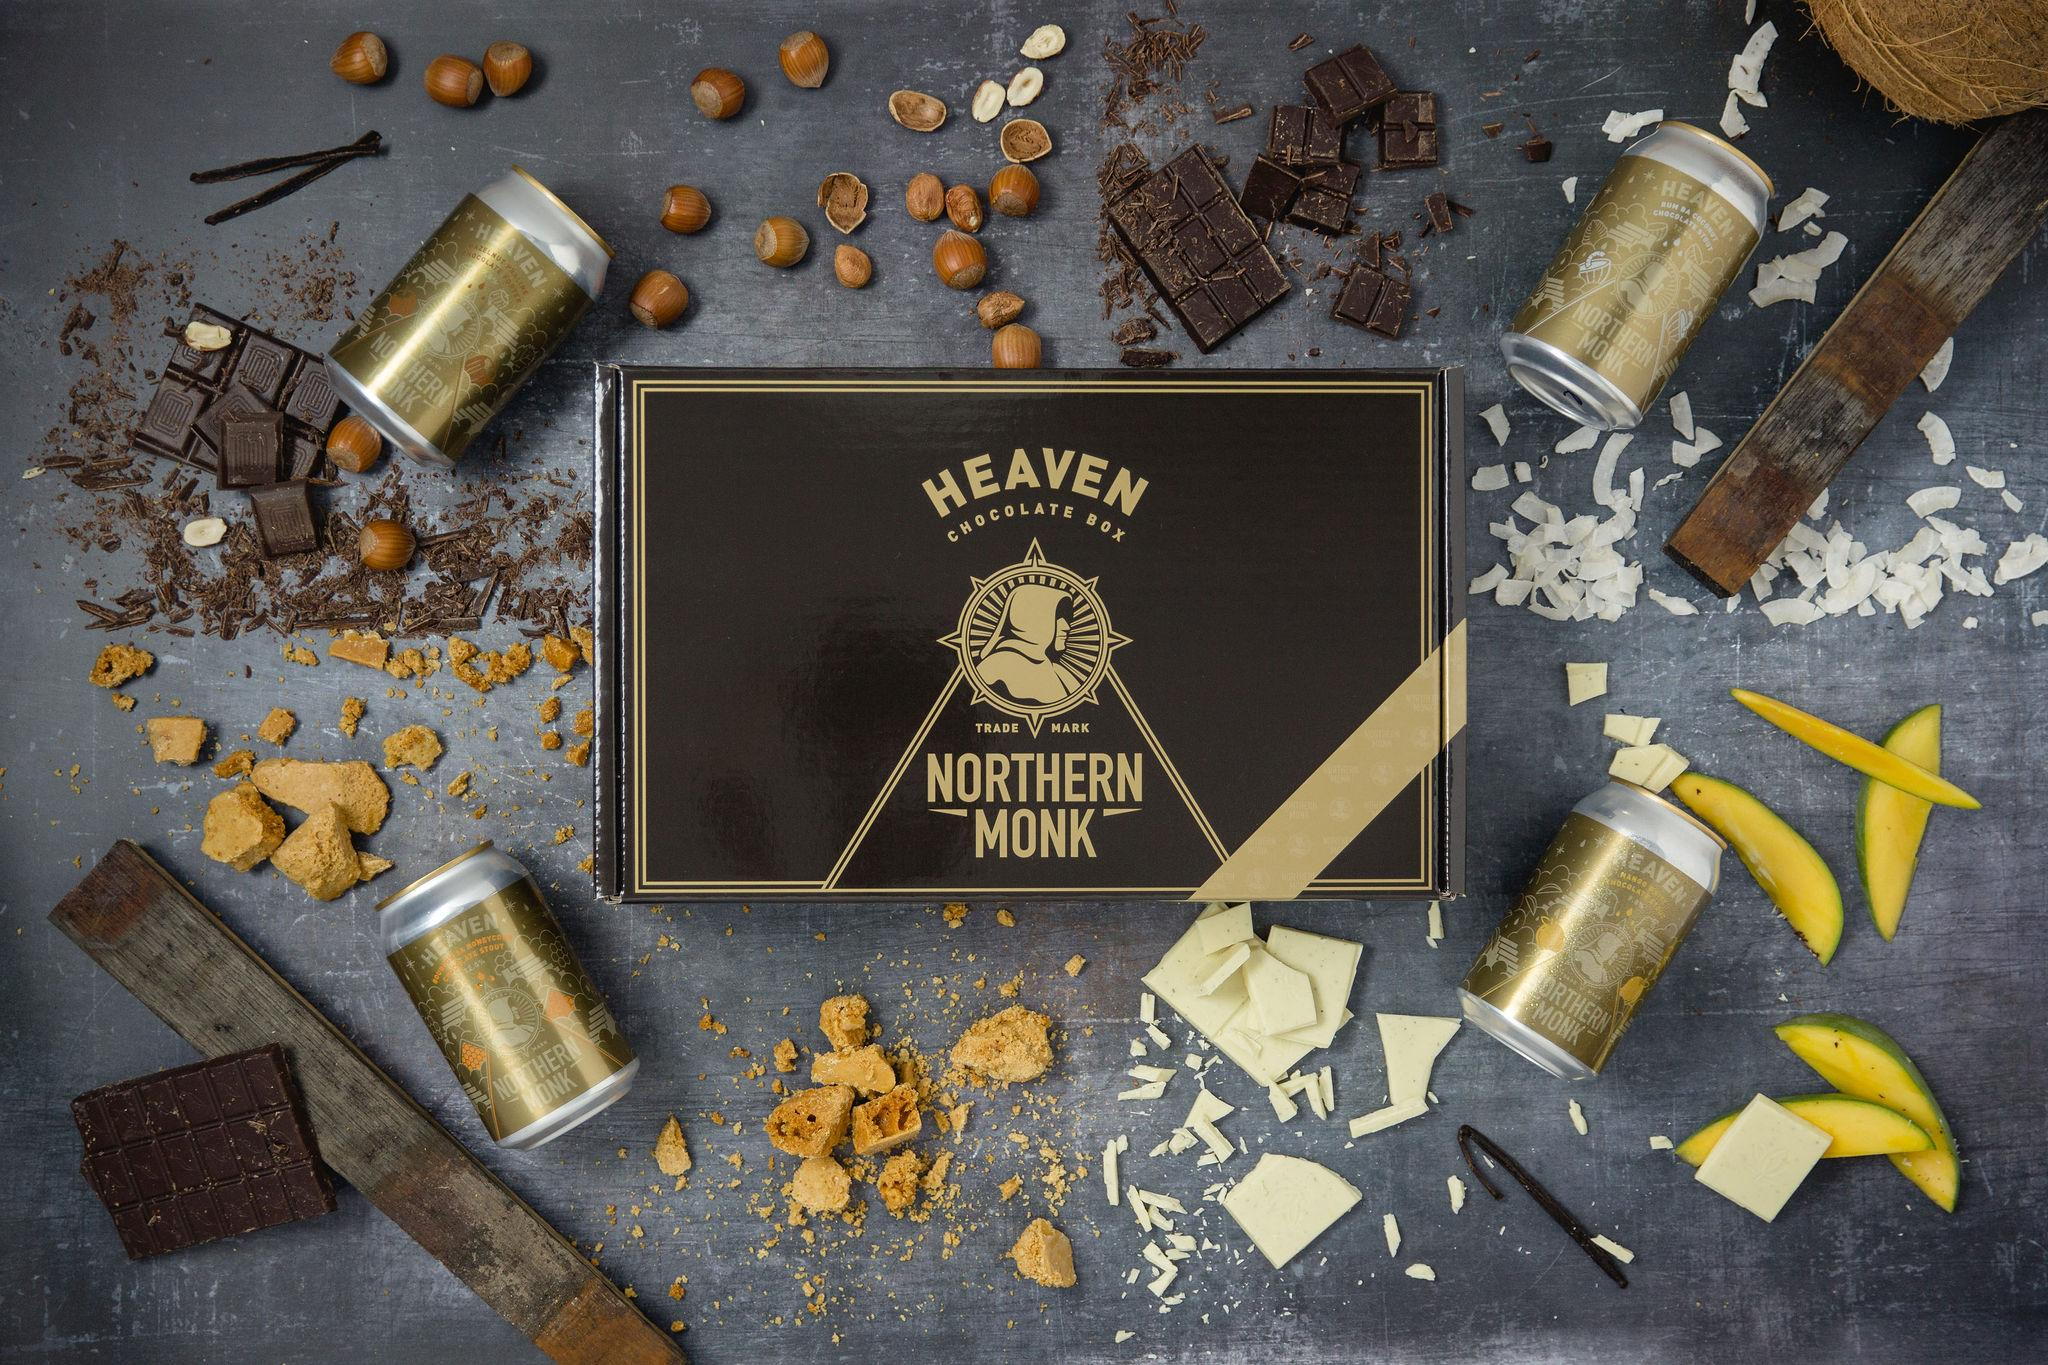 Northern Monk Packaging | Beer Packaging | Beer Boxes | Corrugated Packaging | Cardboard Bozes | Heaven Chocolate Box | Saxon Packaging | UK Packaging Manufacturer | Bespoke Packaging | Custom Packaging | Printed Packaging